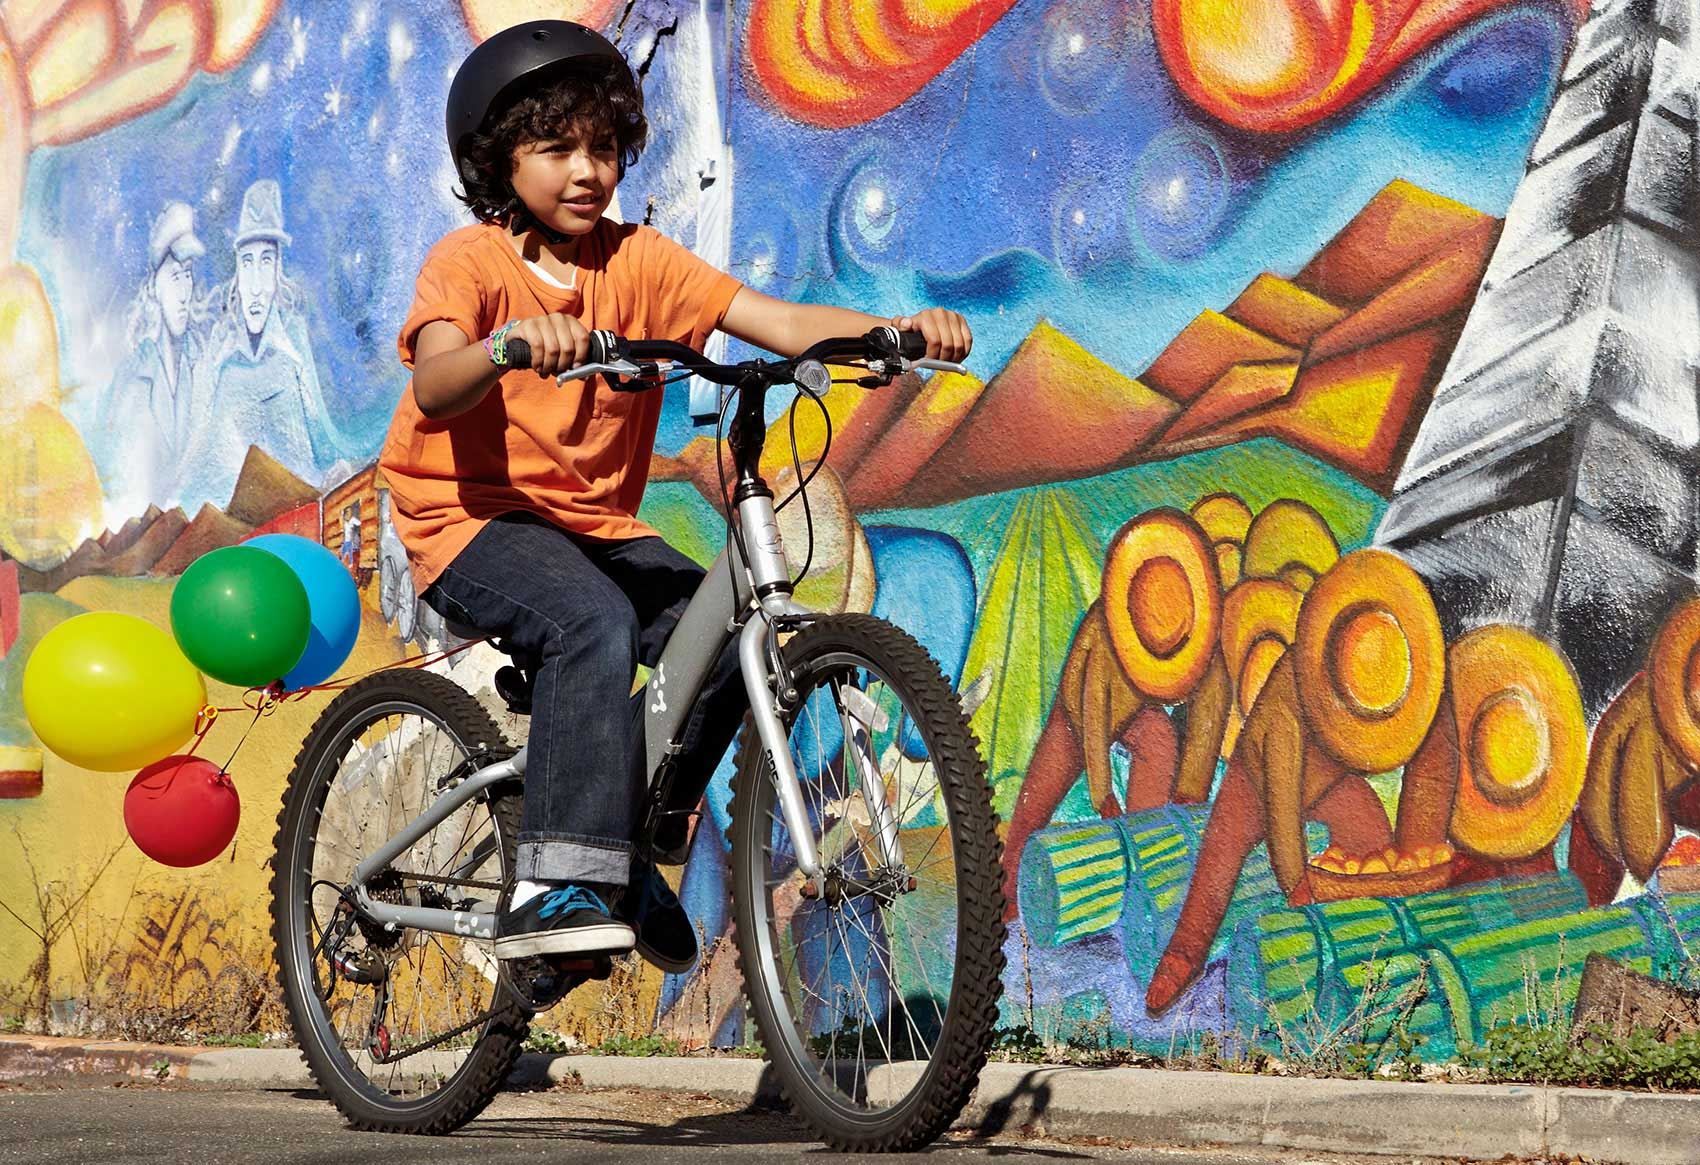 Photography_Children Teens_Kid riding a bike-Tony Garcia